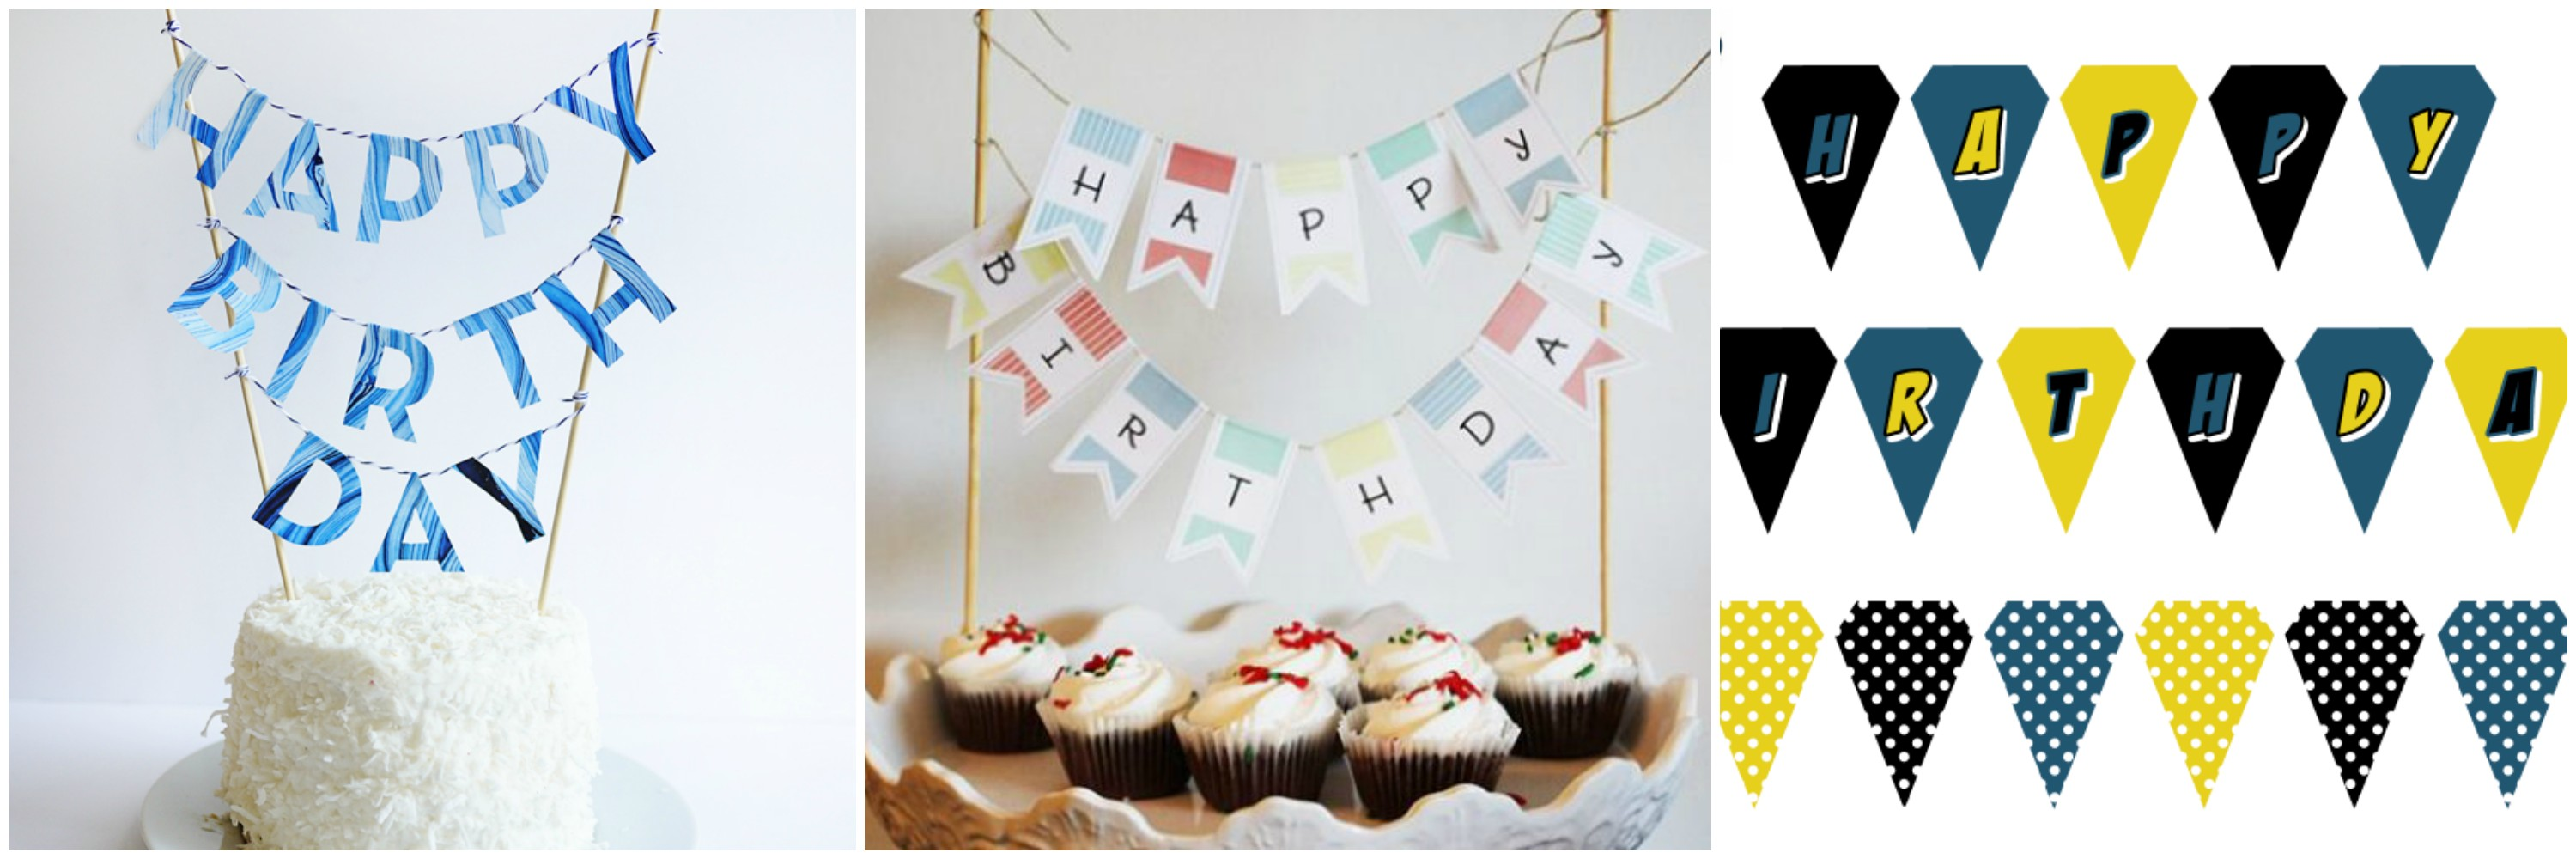 Superb 62 Free Birthday Party Printables The Yellow Birdhouse Funny Birthday Cards Online Barepcheapnameinfo